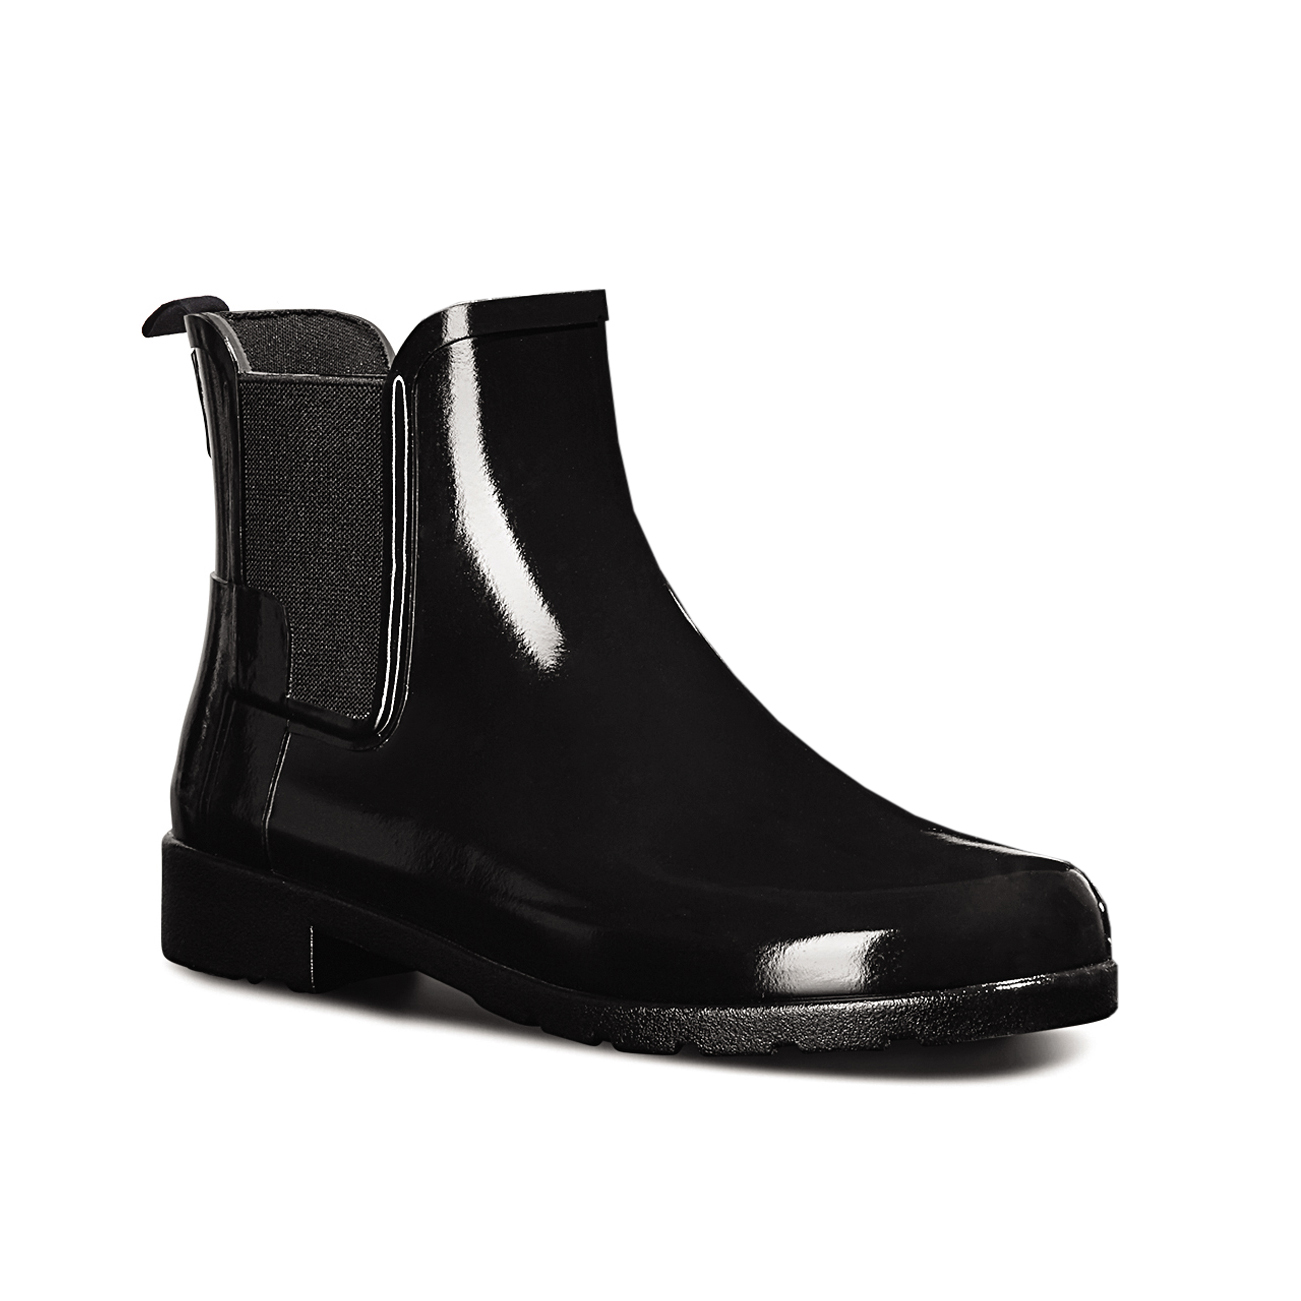 Ankle Boots/Booties; Dress Sandals Show All. Gender Girls Age Little Kid Big Kid Brand Bearpaw Blowfish Malibu Capelli New York Jellypop MIA Nine West Soda Girls' Capelli New York Rain Boot Rain Boots $ Girls' Capelli New York Rainboot-G Rain Boots $ Girls' Bearpaw Boo Boots.